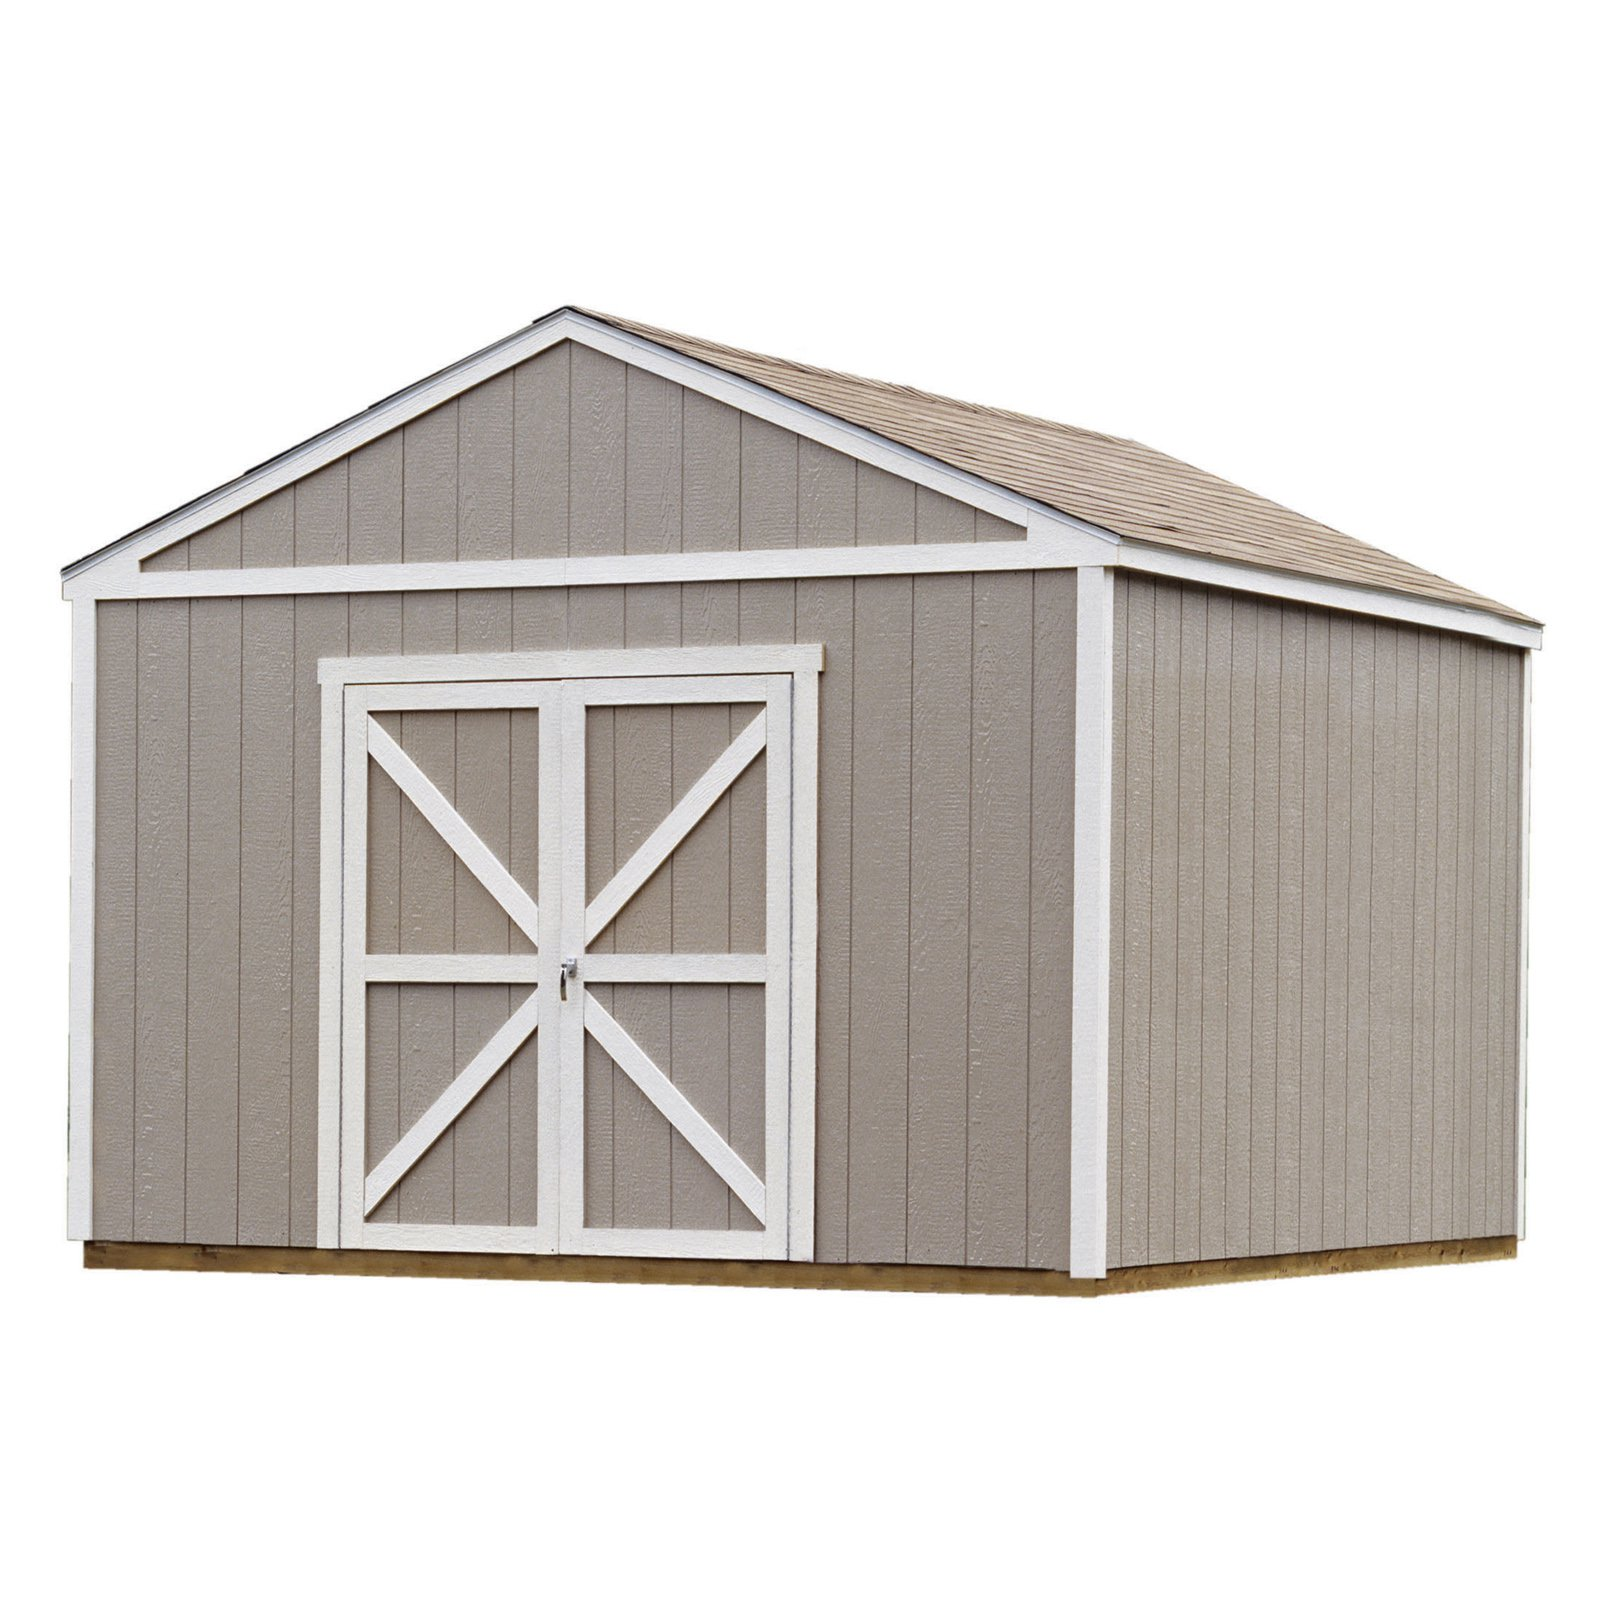 Handy Home Columbia Storage Shed - 12 x 12 ft.